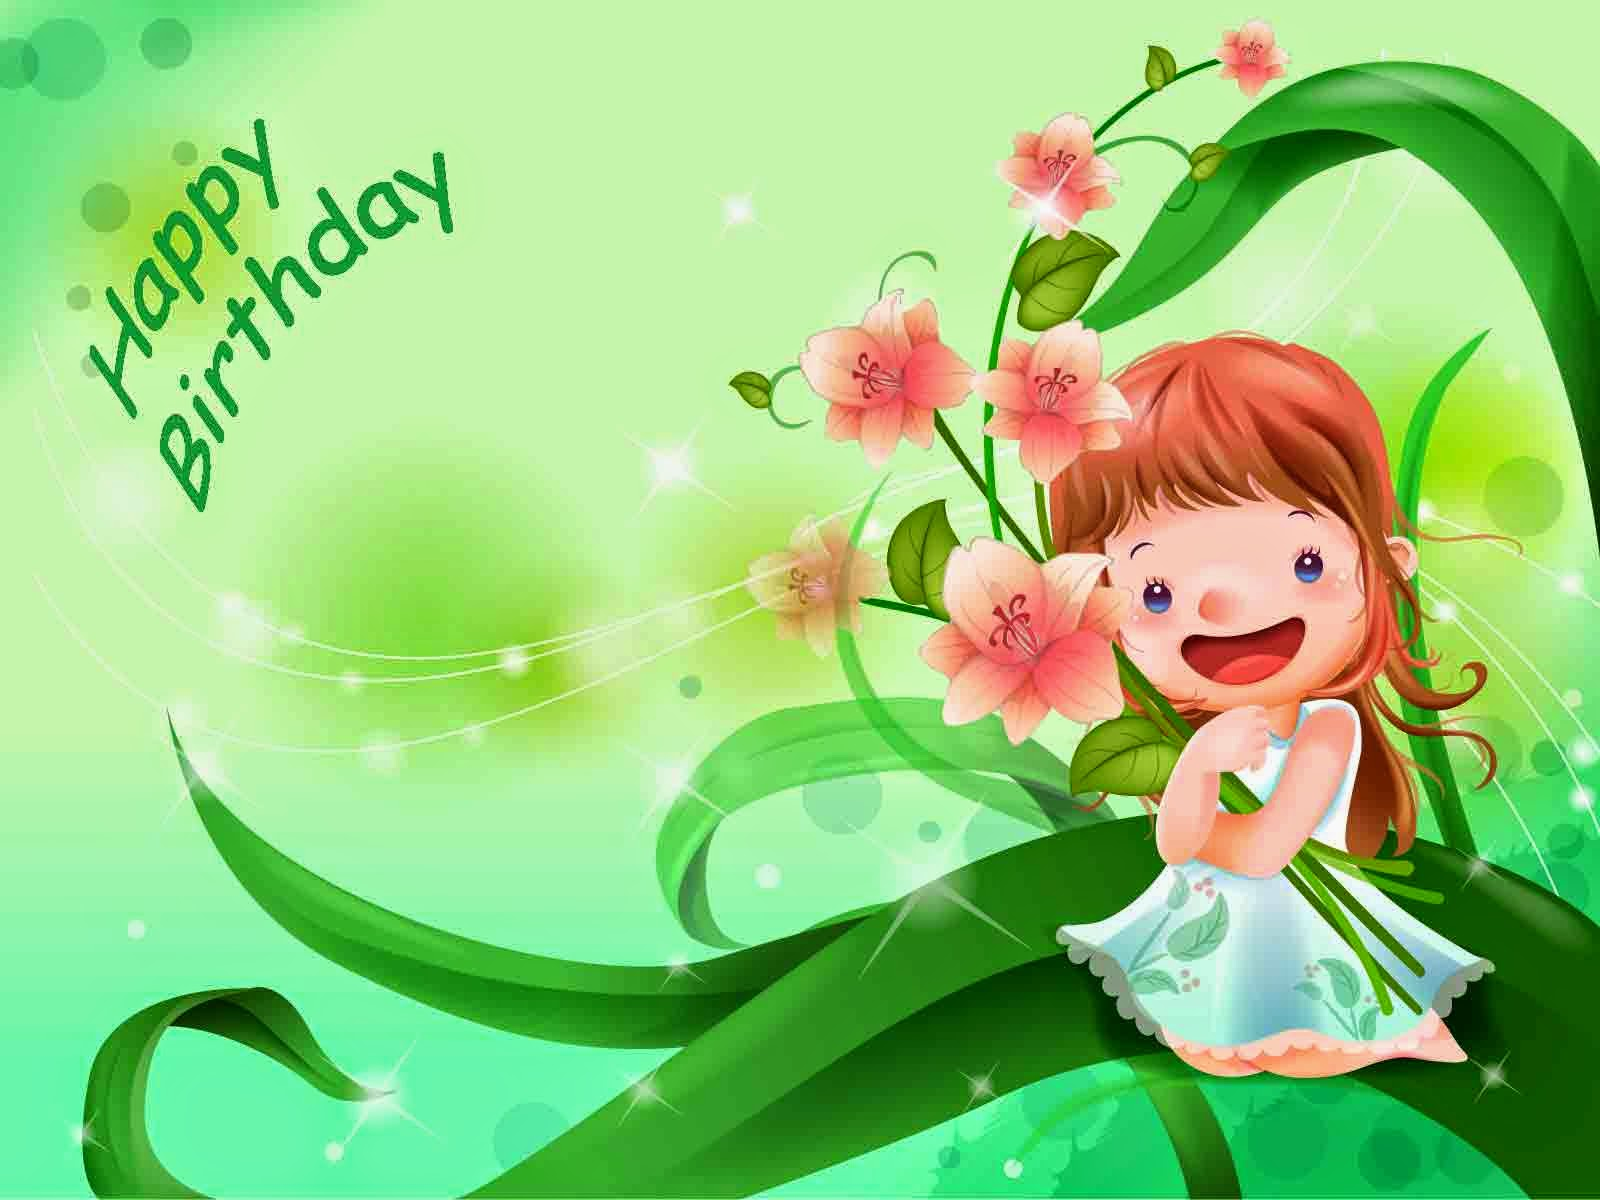 birthday wishes hd images free download ; Cute-Happy-Birthday-girl-vector-image-free-download-HD